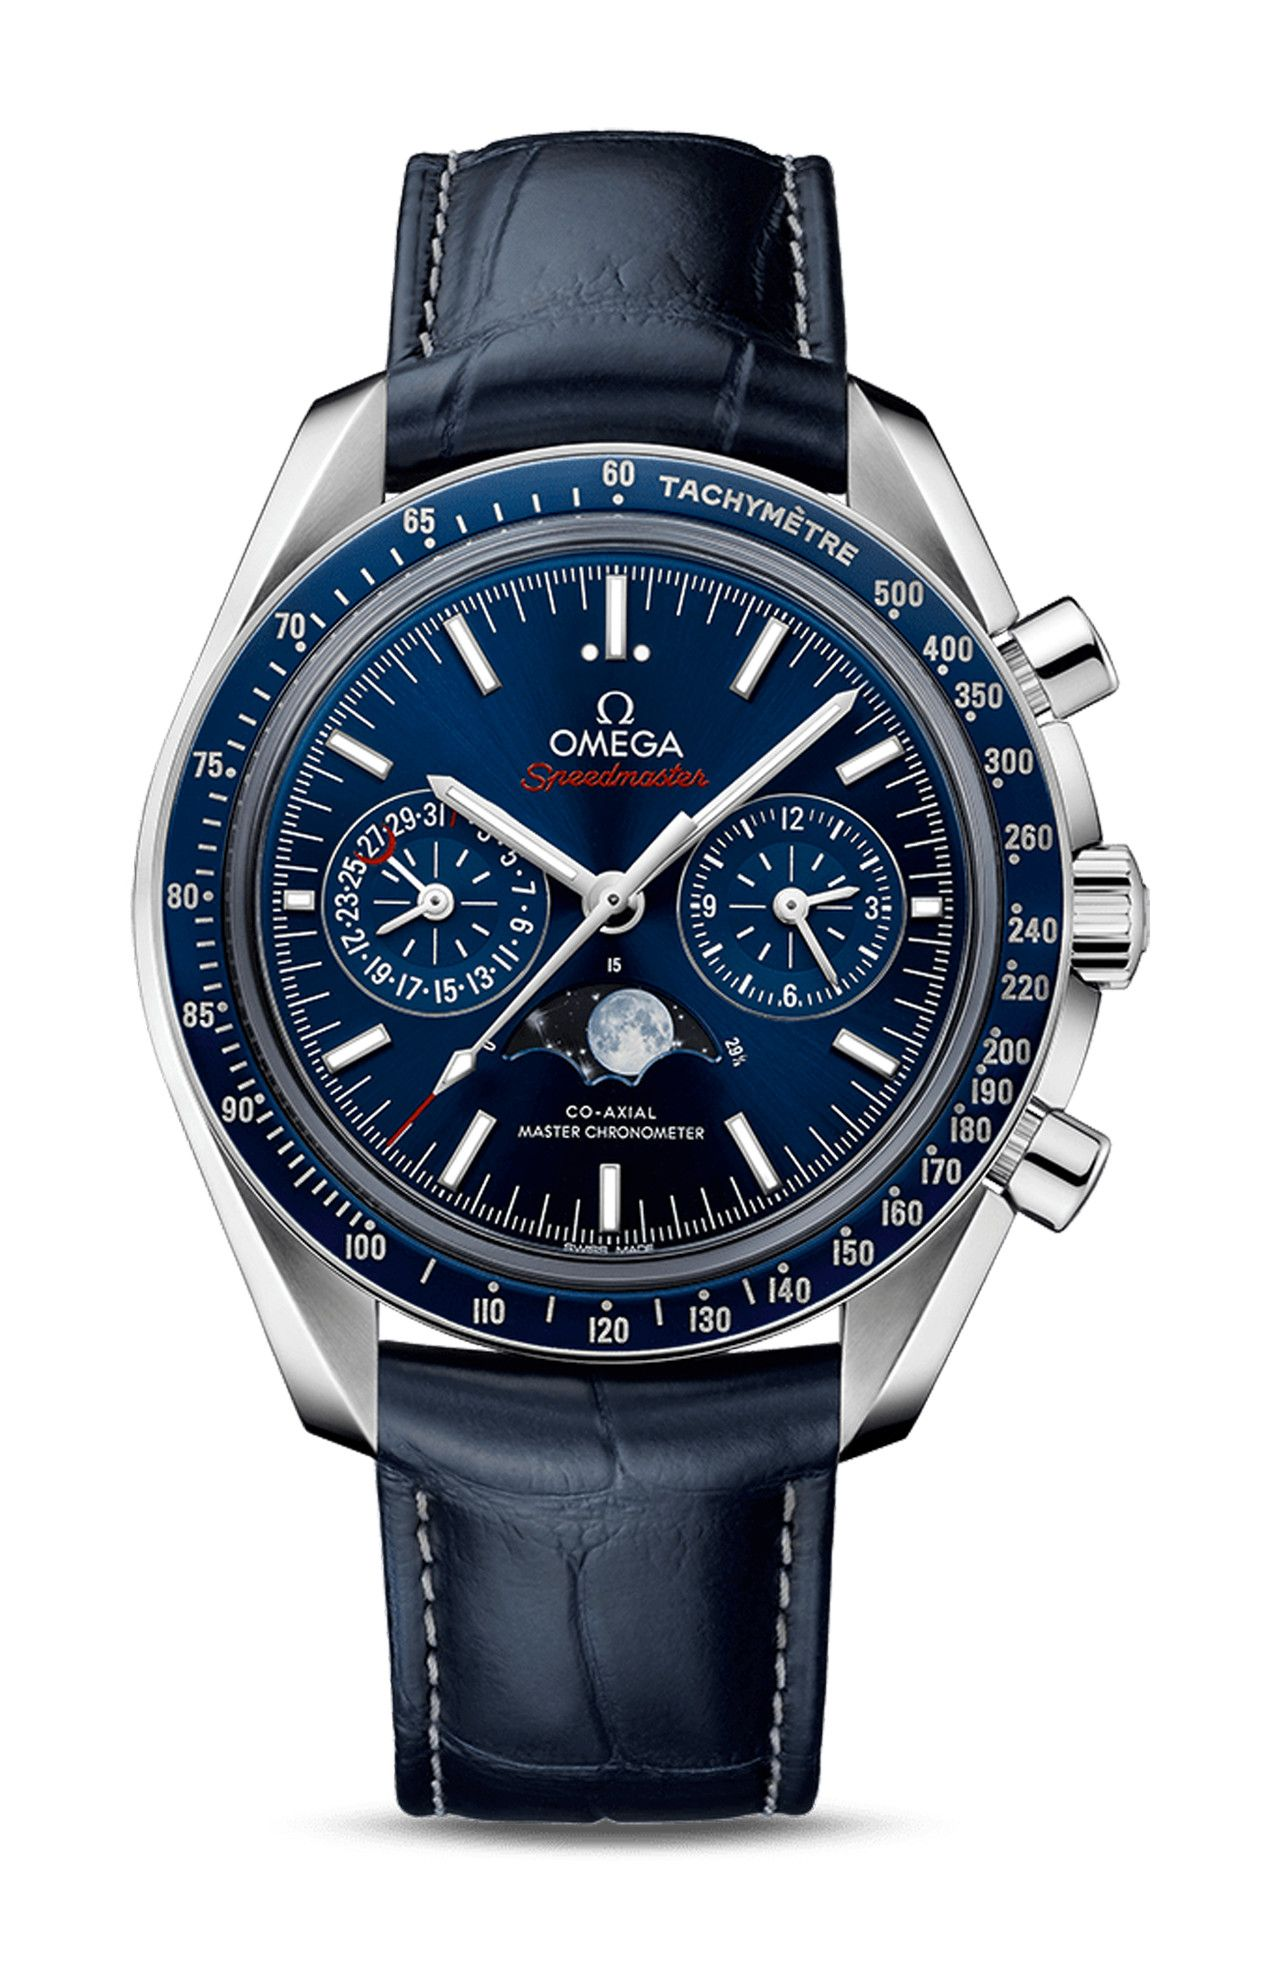 MOONPHASE CO-AXIAL MASTER CHRONOMETER CHRONOGRAPH - 304.33.44.52.03.001